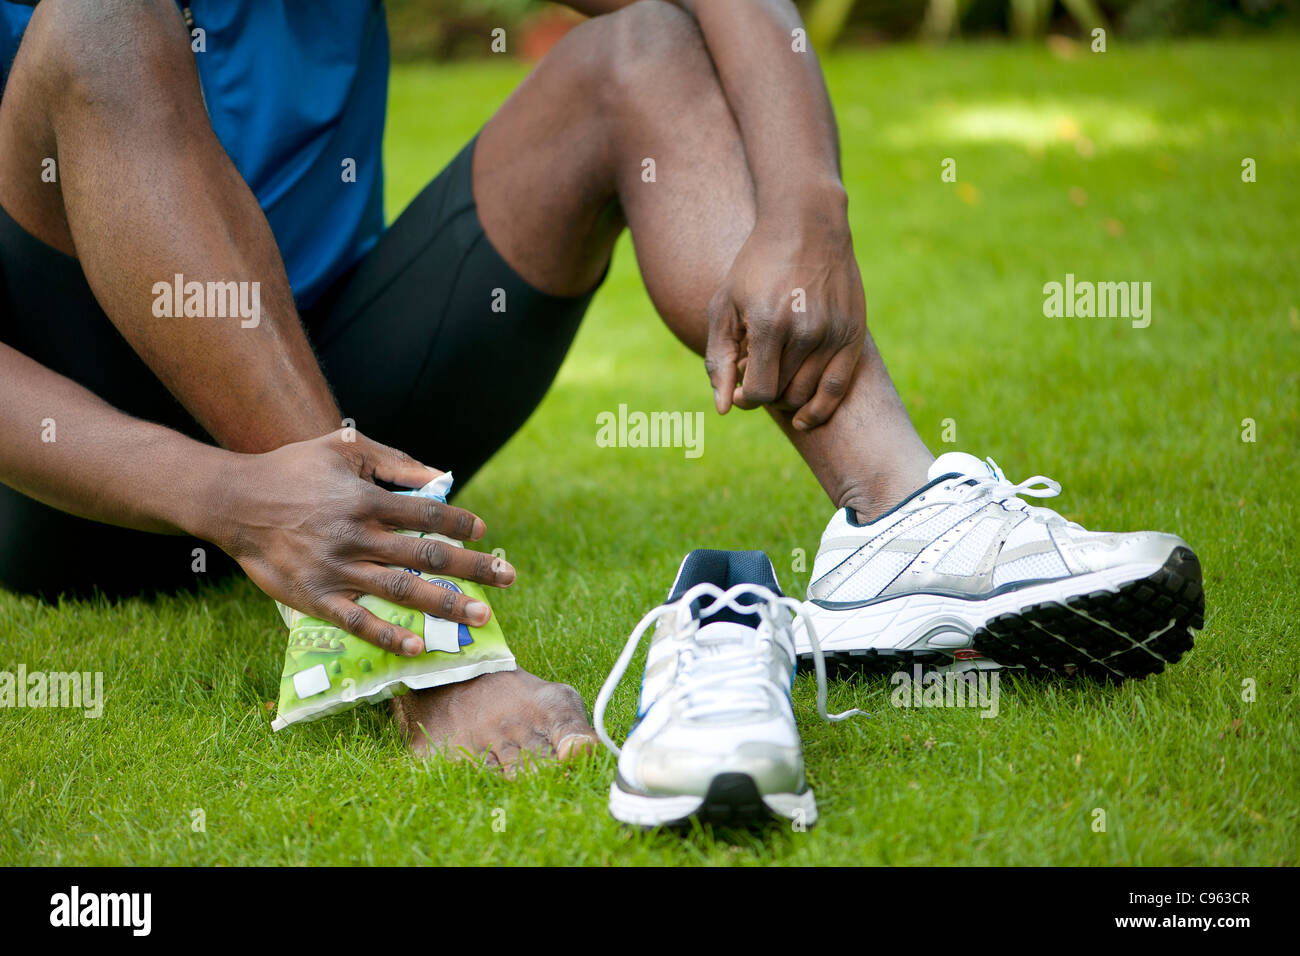 Man applying an ice pack to his injured ankle. - Stock Image